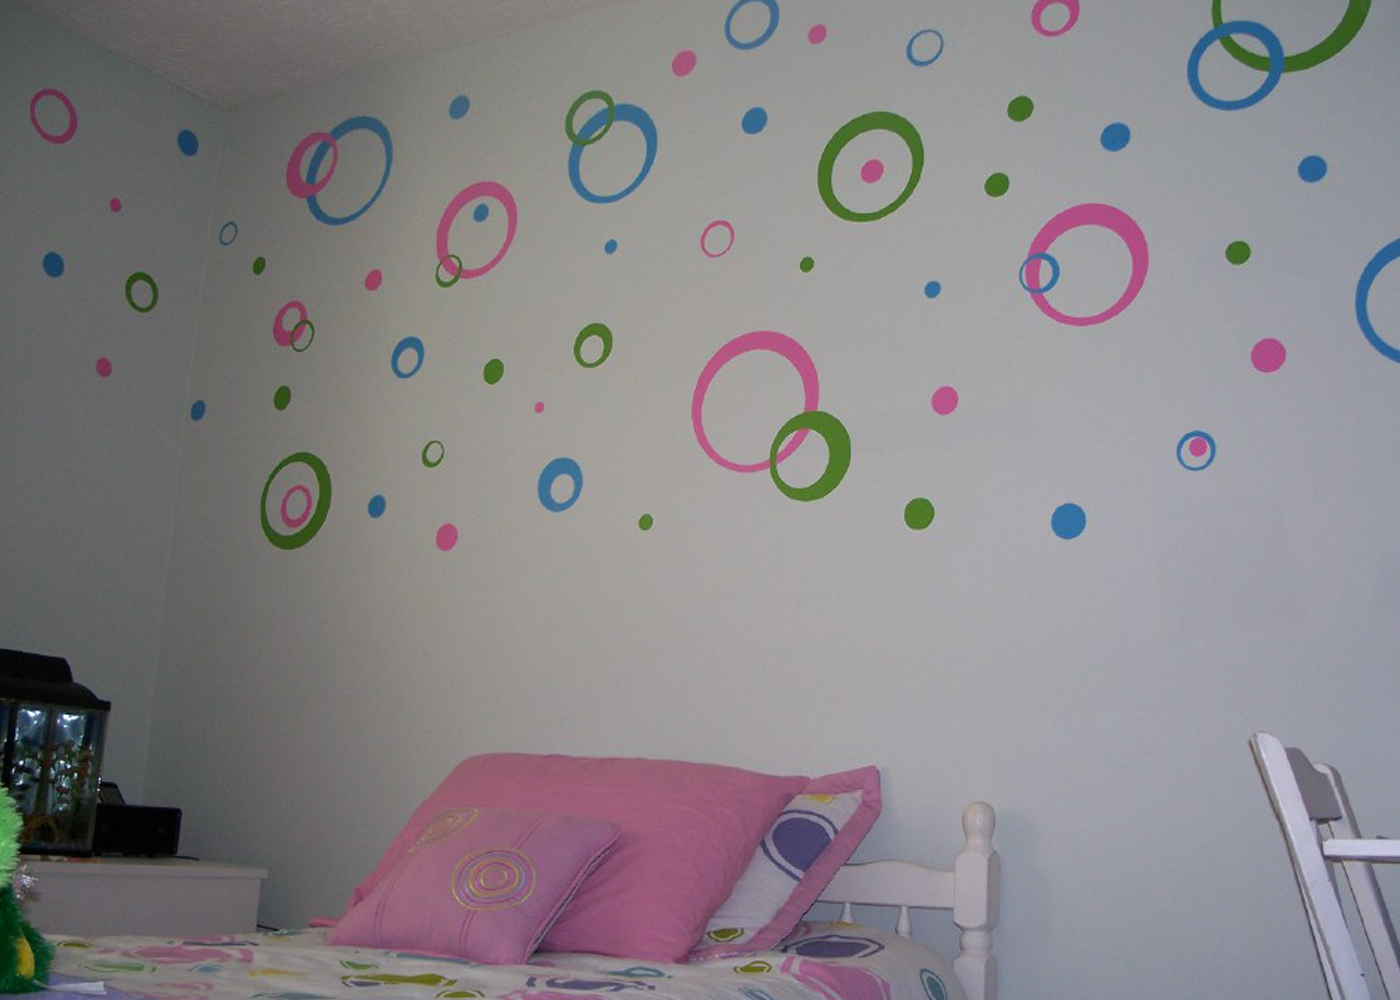 vinyl-wall-decal-circles-3-color-kylah-s-room.jpg